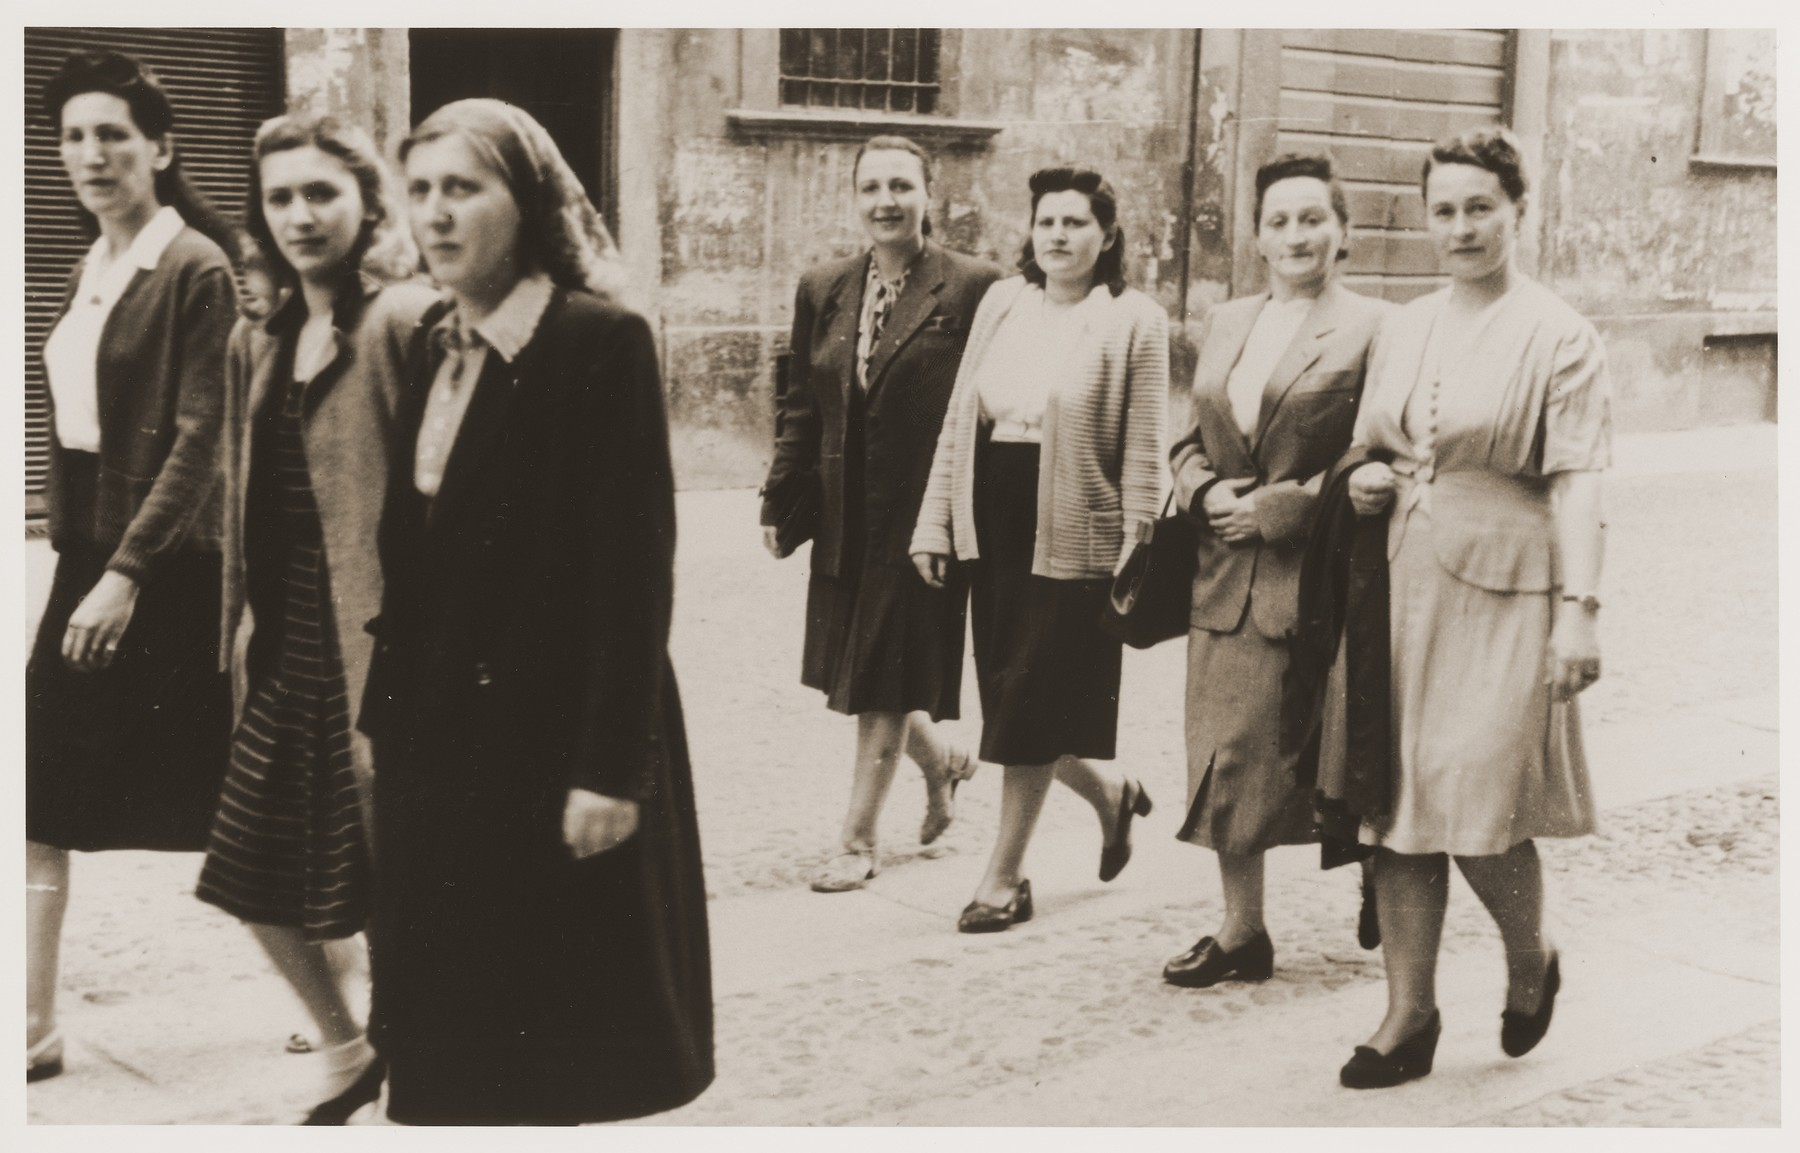 Jewish DP women in the Cremona displaced persons camp take part in a march advocating the creation of a Jewish state.    Among those pictured are Zelda Leikach (far right) and Chaika Katz (next to her, to her left).